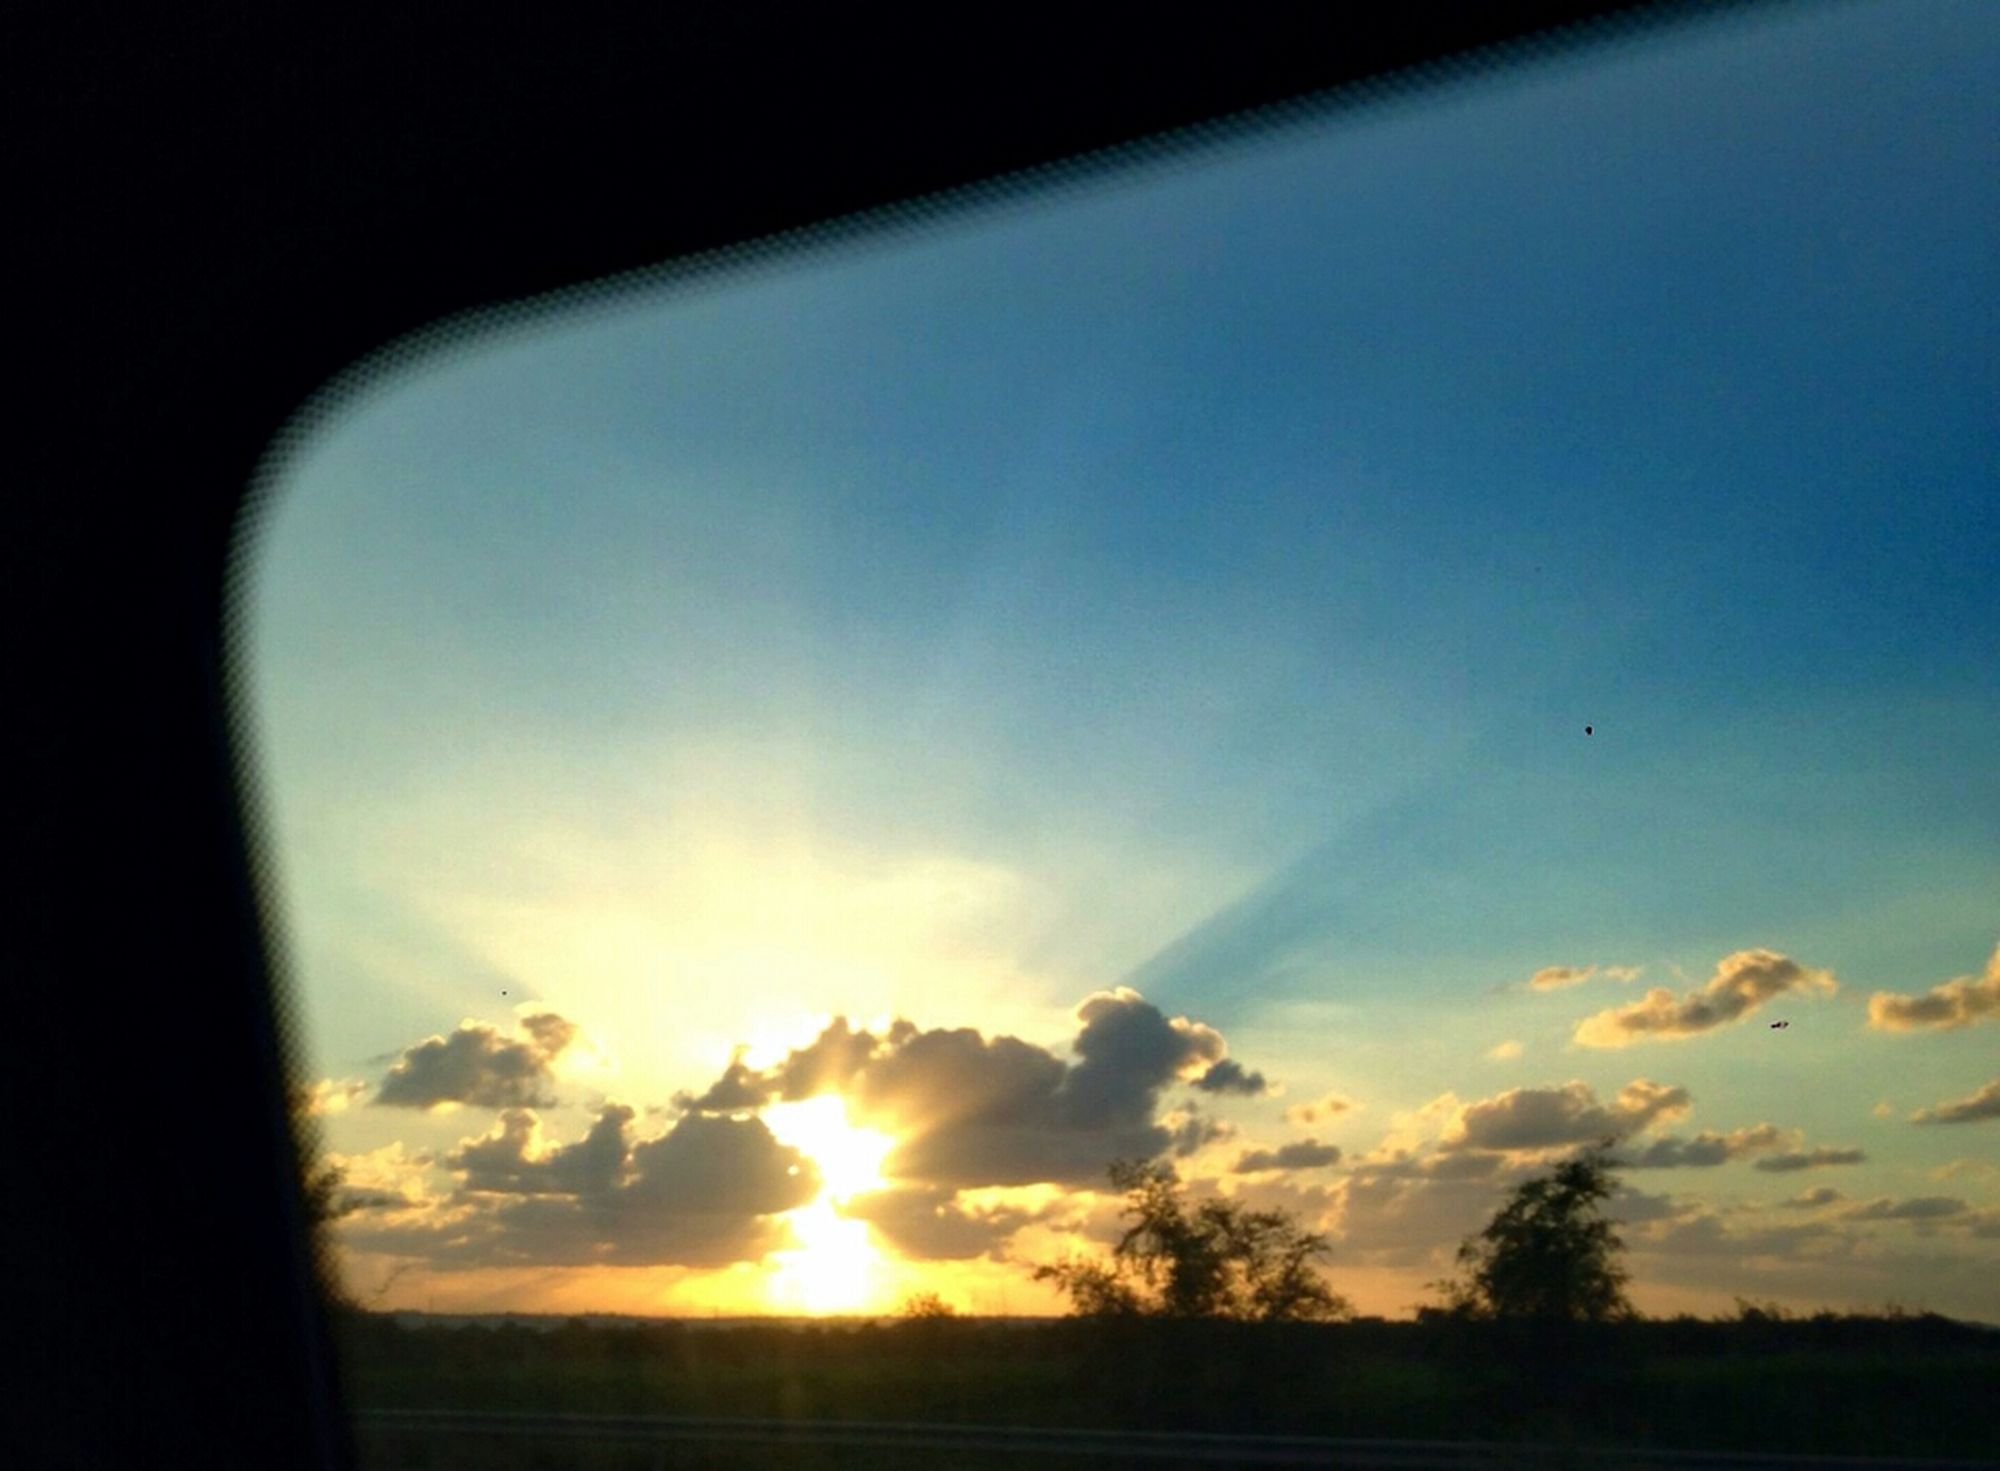 The View From My Window ... good evening 👋🌇. By The End Of The Day Sunset Darkness And Light Last Rays Of Sunlight Driving On The Road Depth Of Focus The Beauty In Simplicity